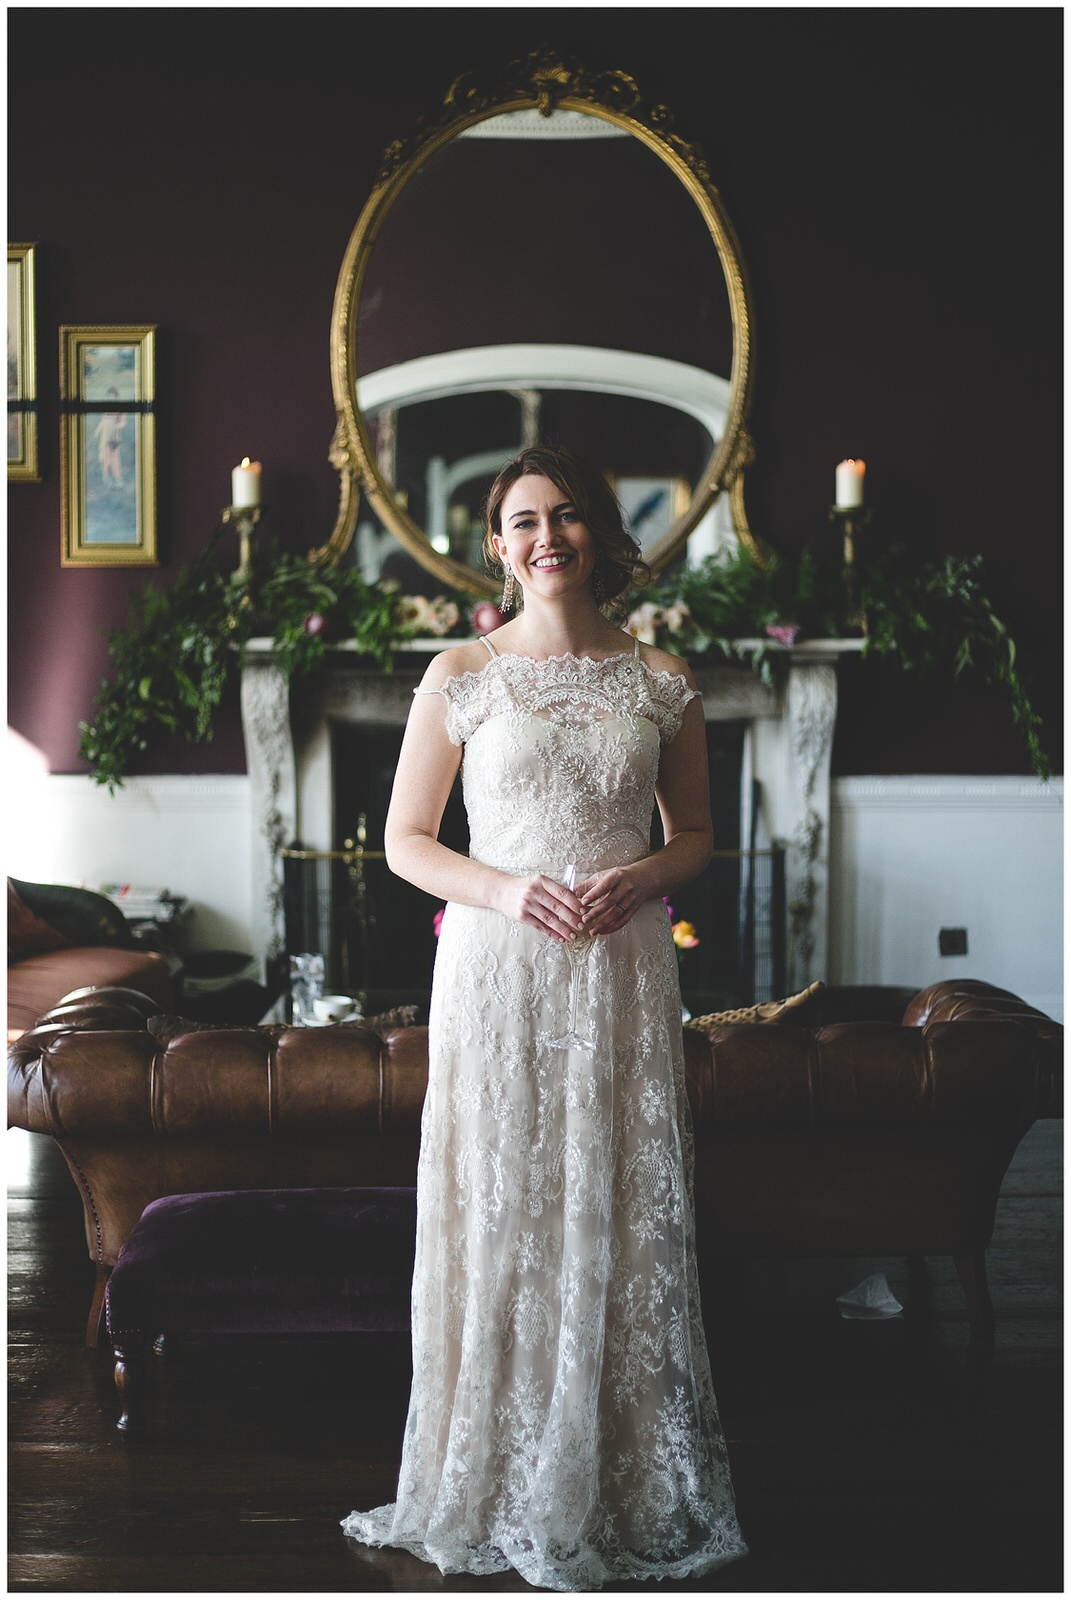 Stunning portraits of a bride in a cream sequins gown - shot by Wild Things Wed Photography